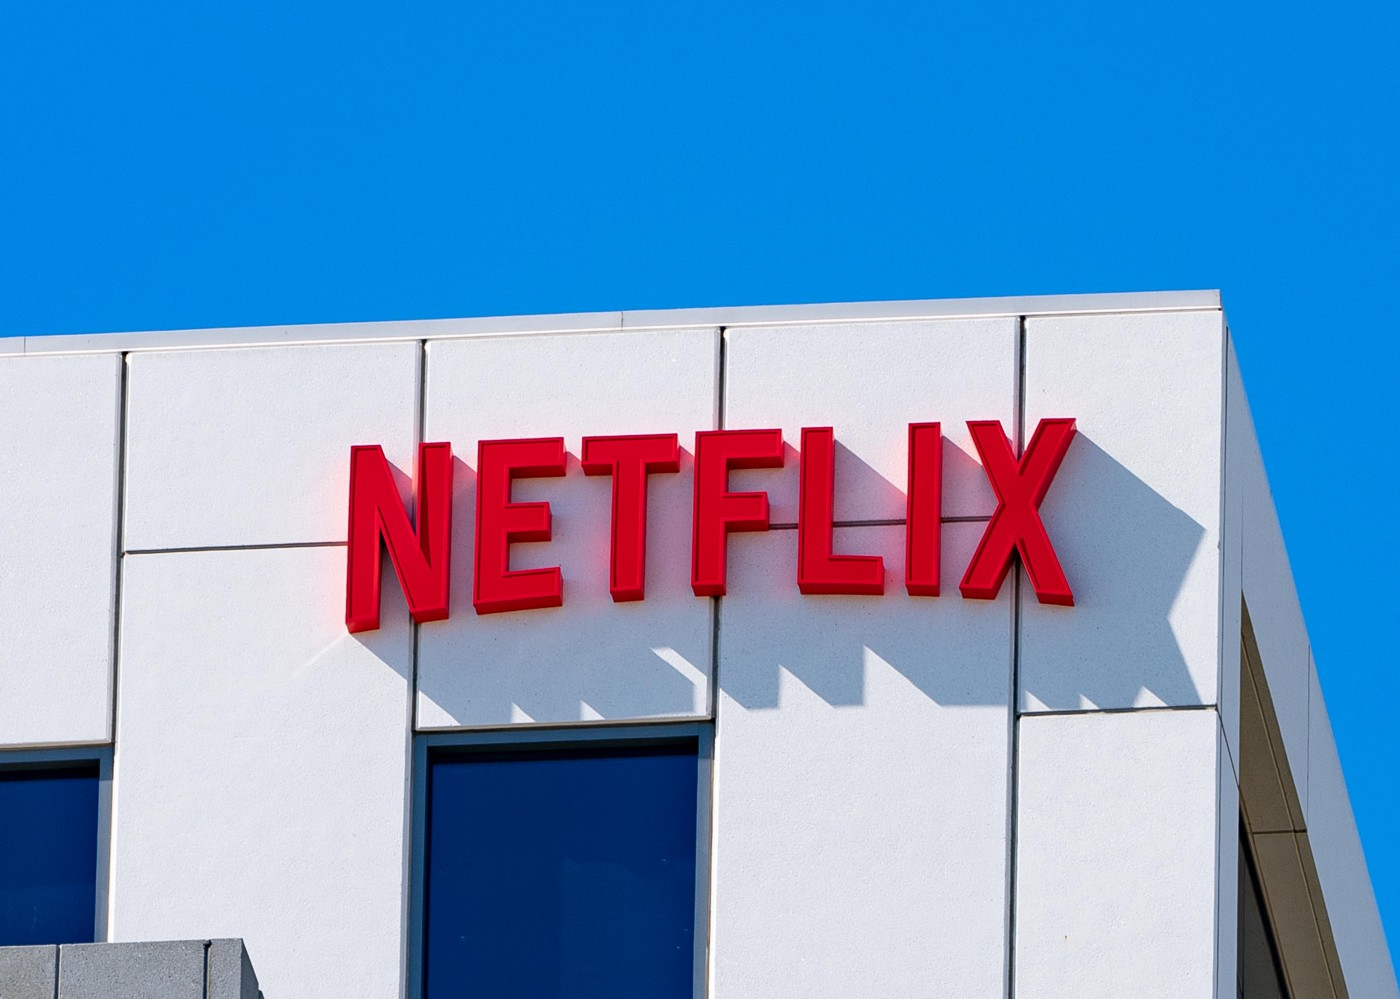 A view of the Netflix logo on the exterior of its corporate office at Sunset Bronson Studios in Los Angeles.